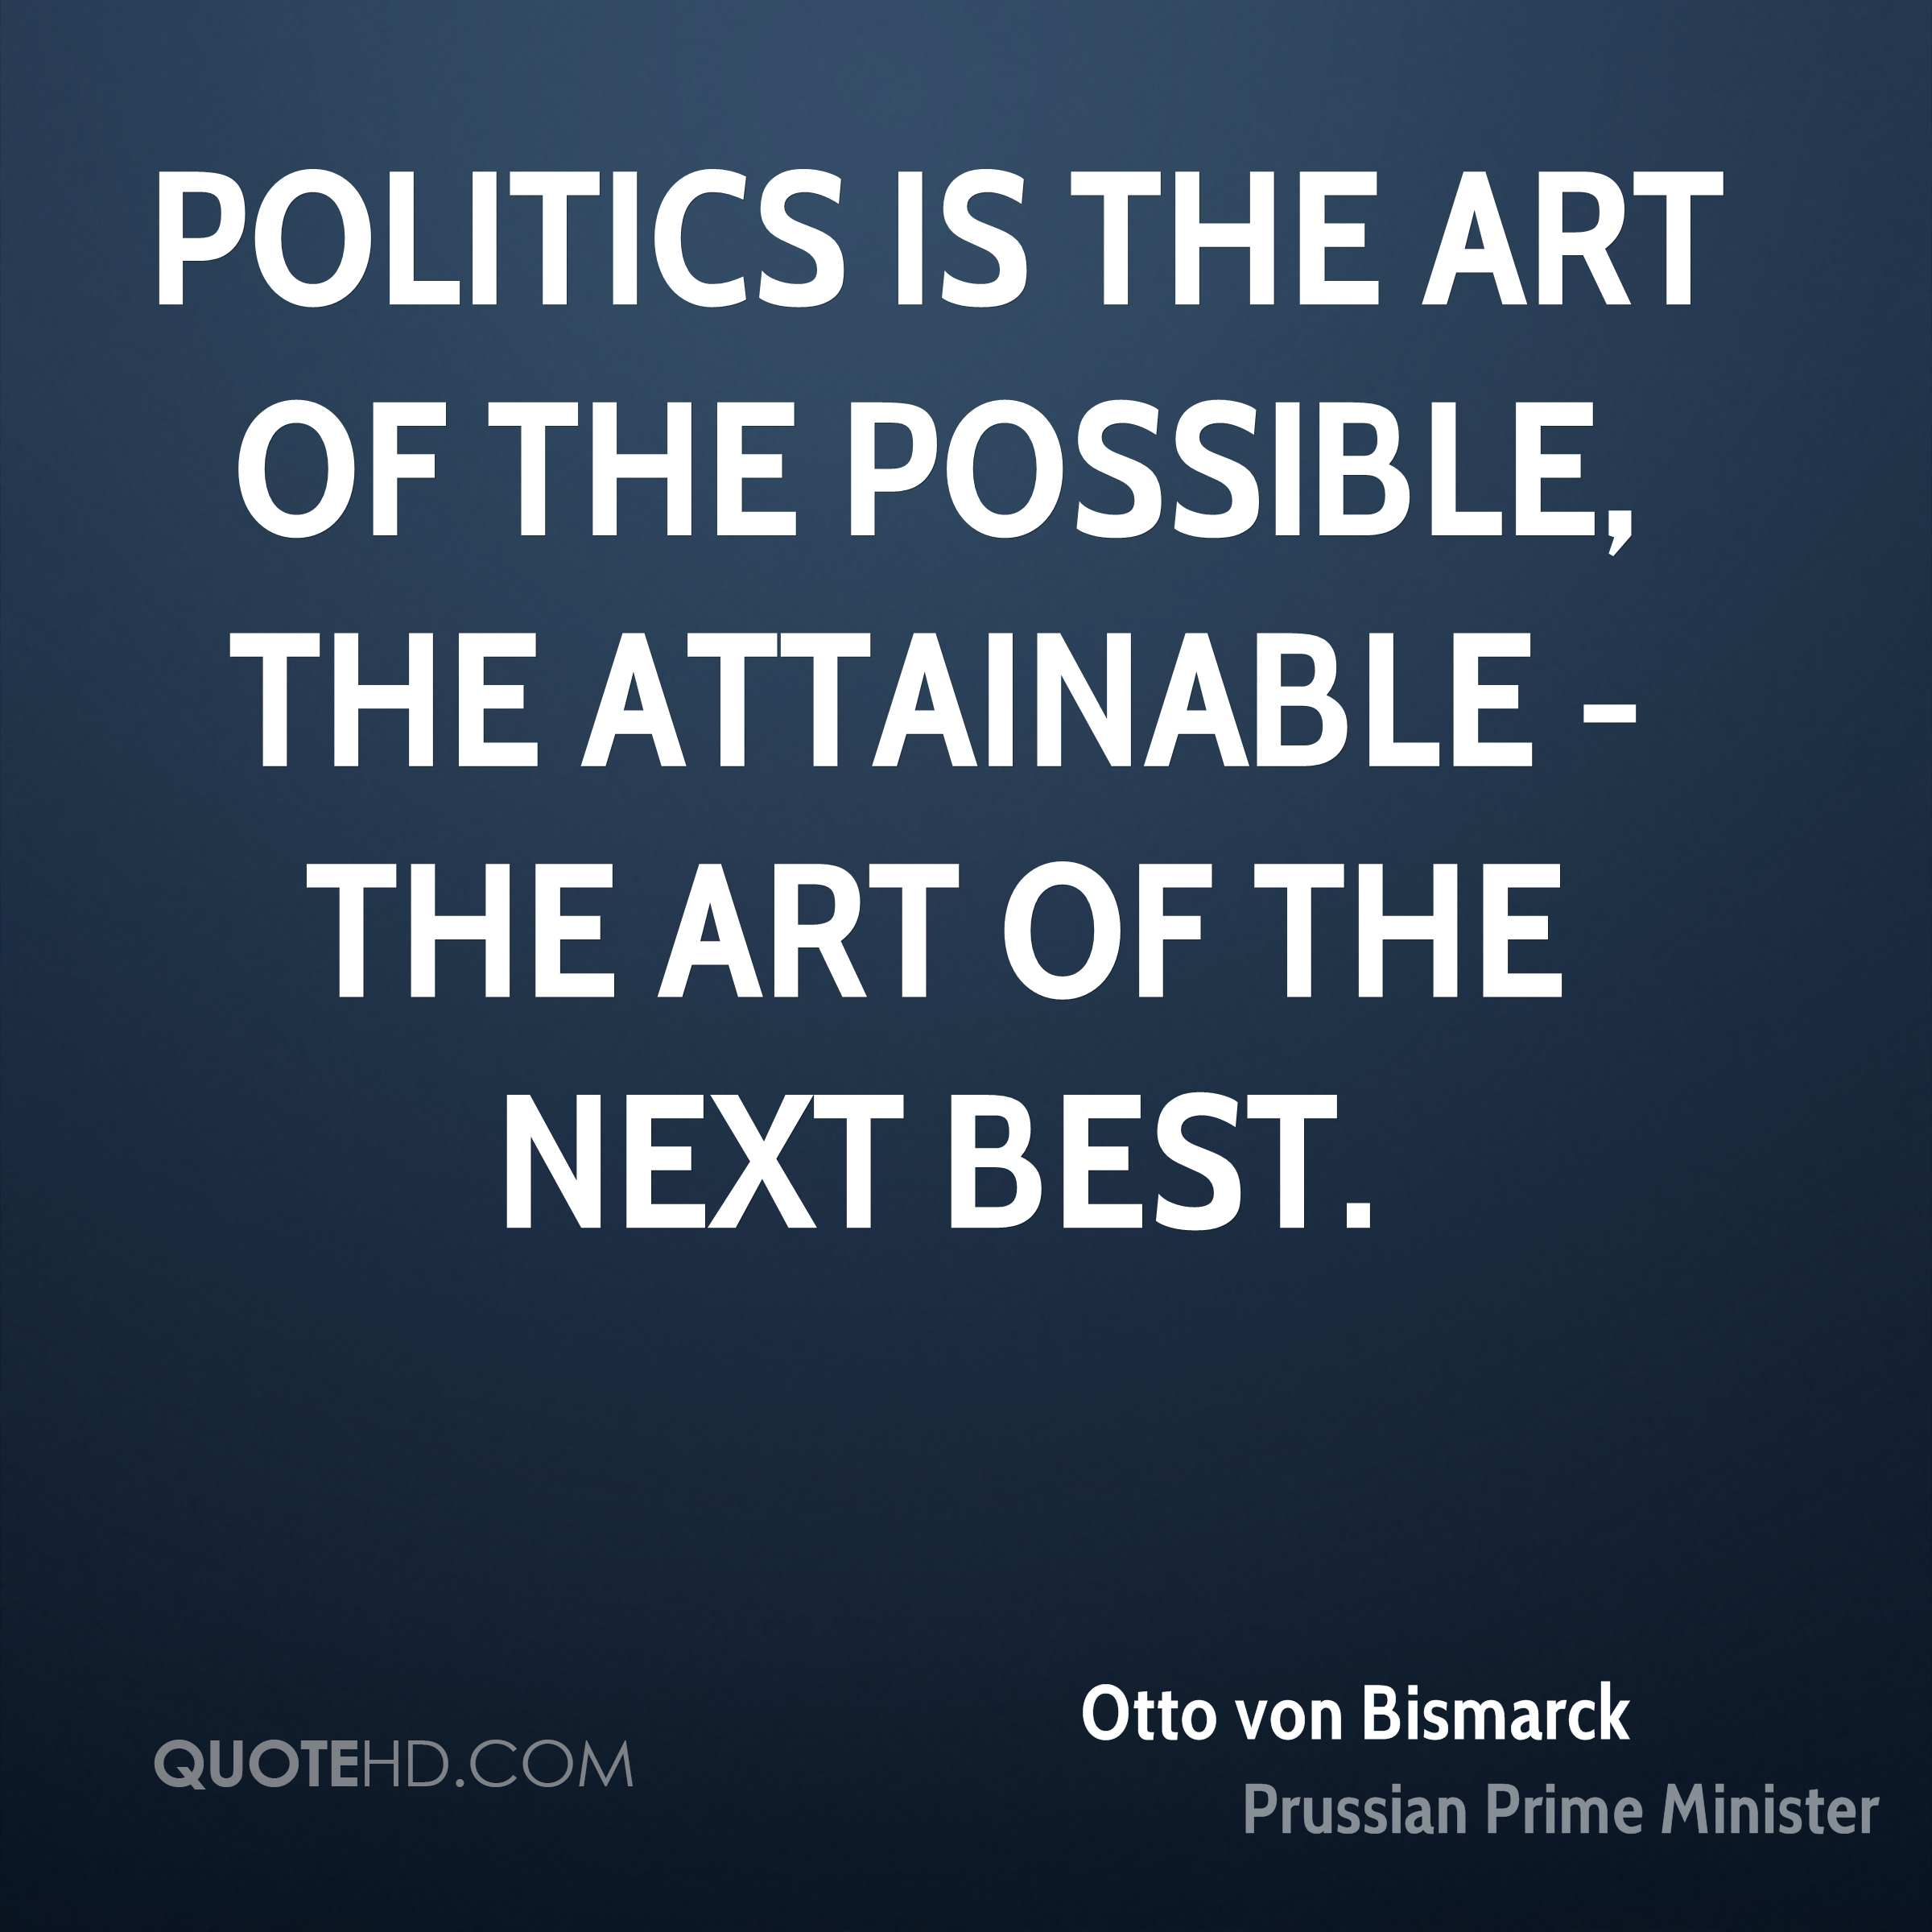 Politics is the art of the possible, the attainable - the art of the next best.